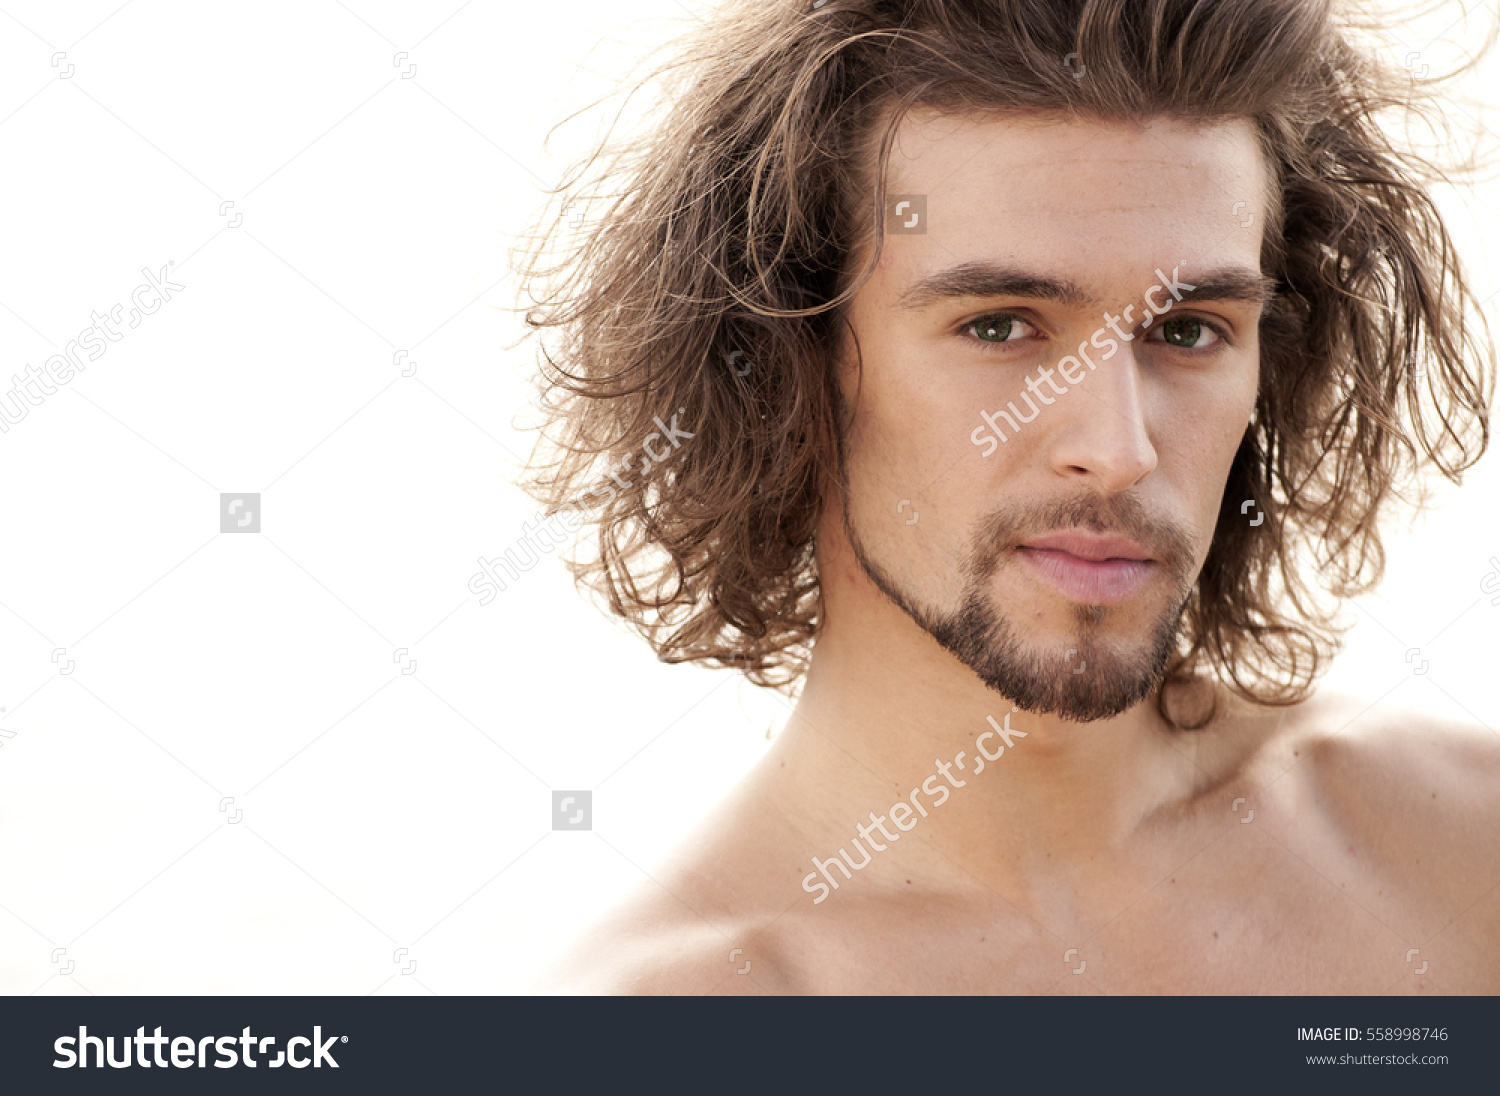 Long Hair Is Sexy - Page 5 - Themed Images - Adonismale Gay Porn Community-6746